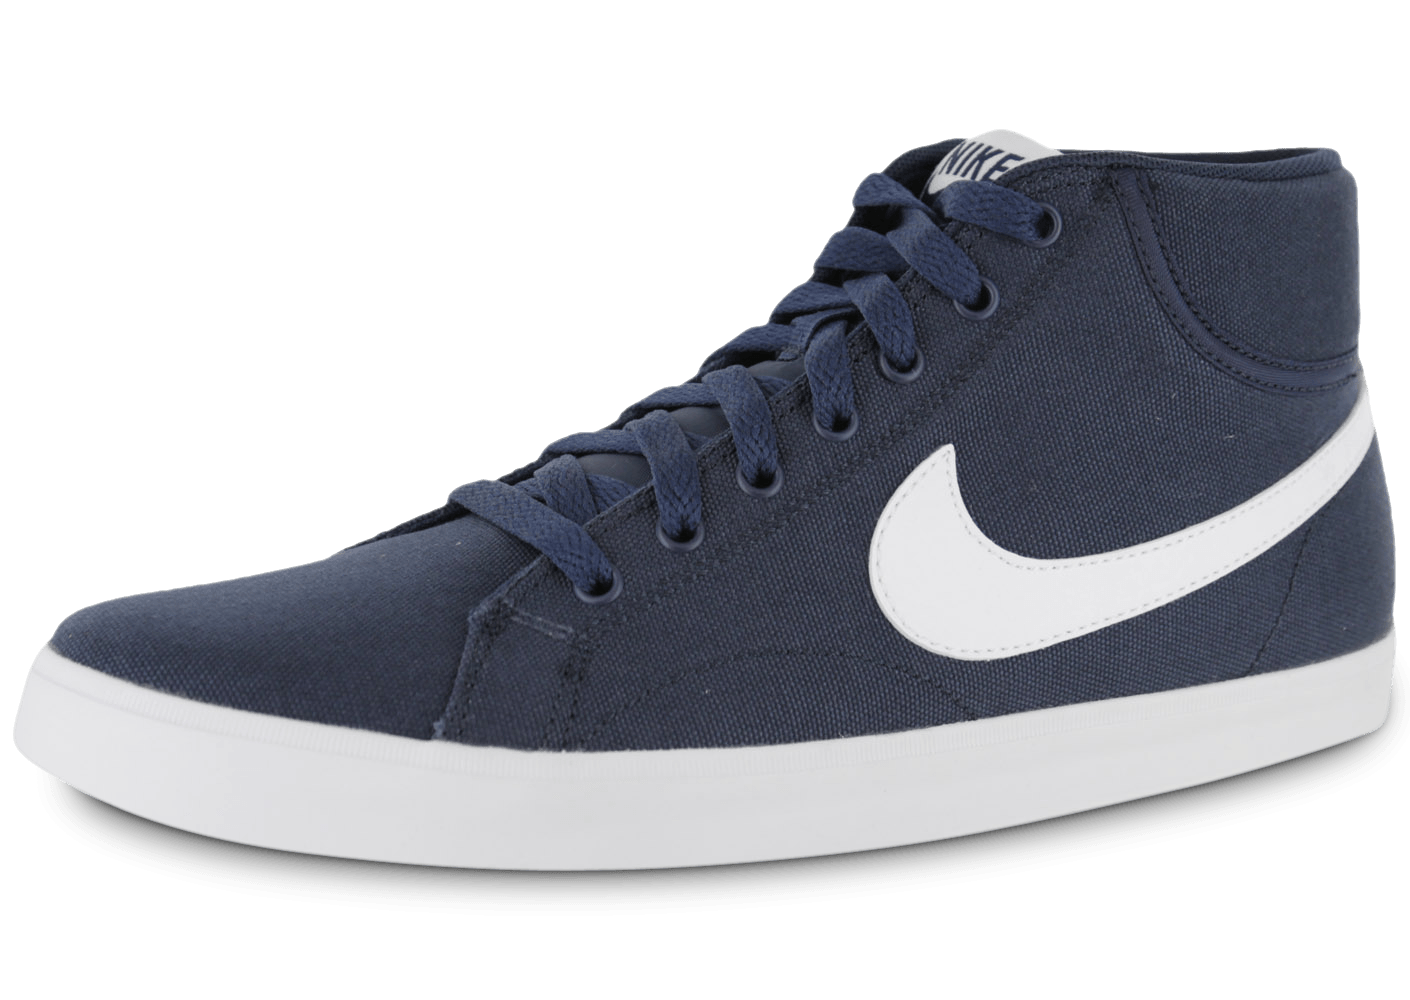 buy online a919a 854b8 Nike Eastham Toile Mid Bleu Marine - Chaussures Baskets homme - Chausport